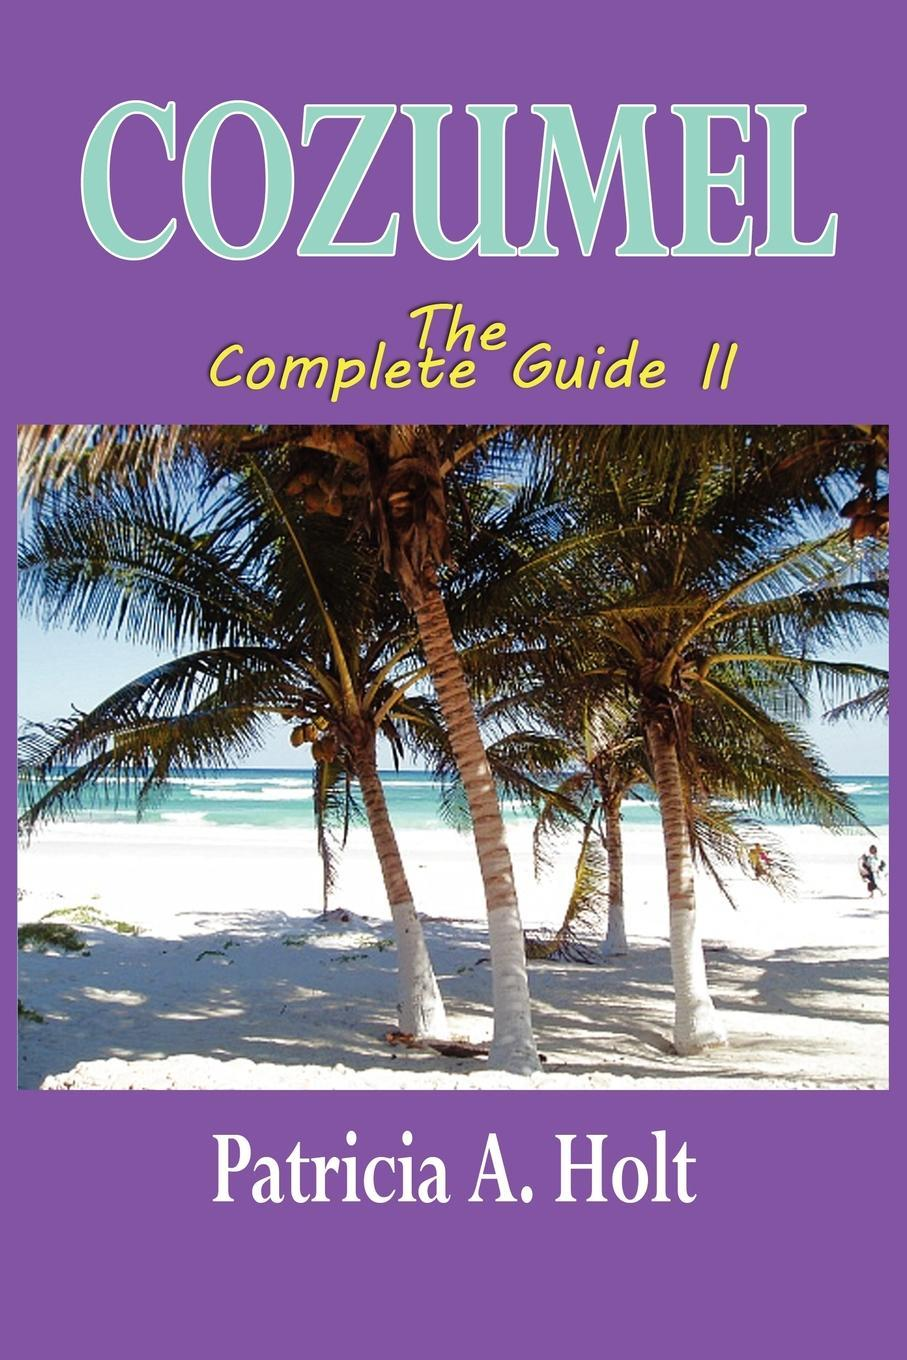 Cozumel The Complete Guide II EB2370003842852